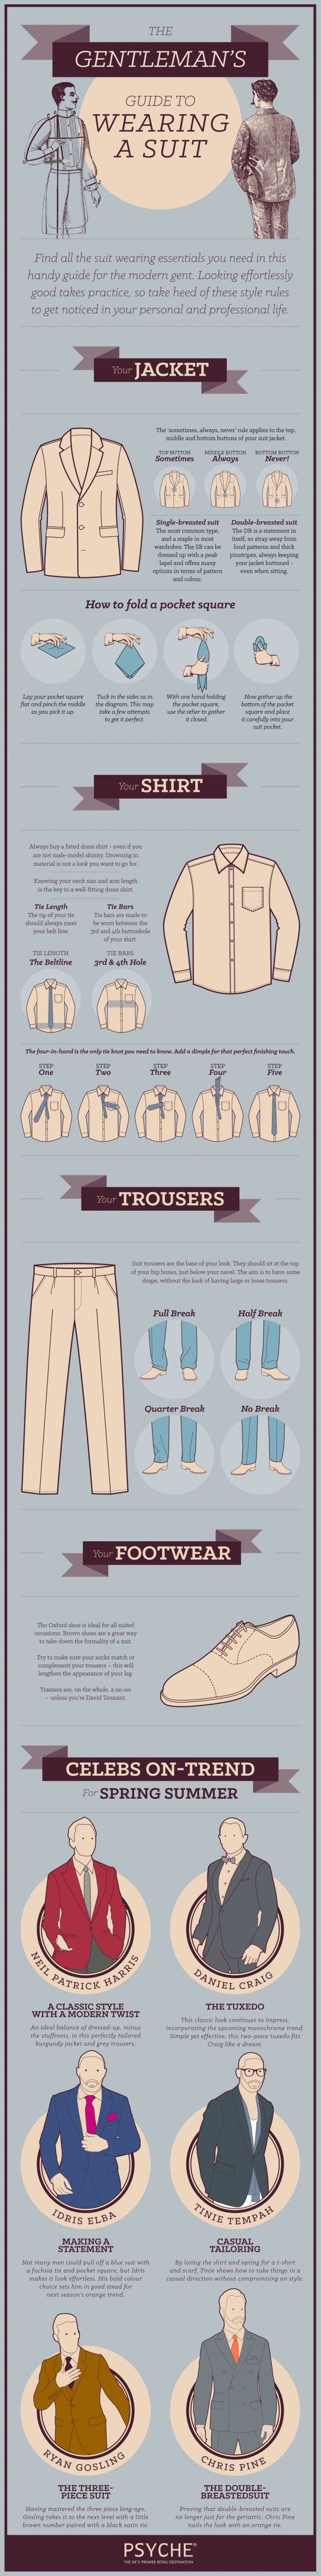 The Gentleman's Guide to Wearing a Suite #infographic